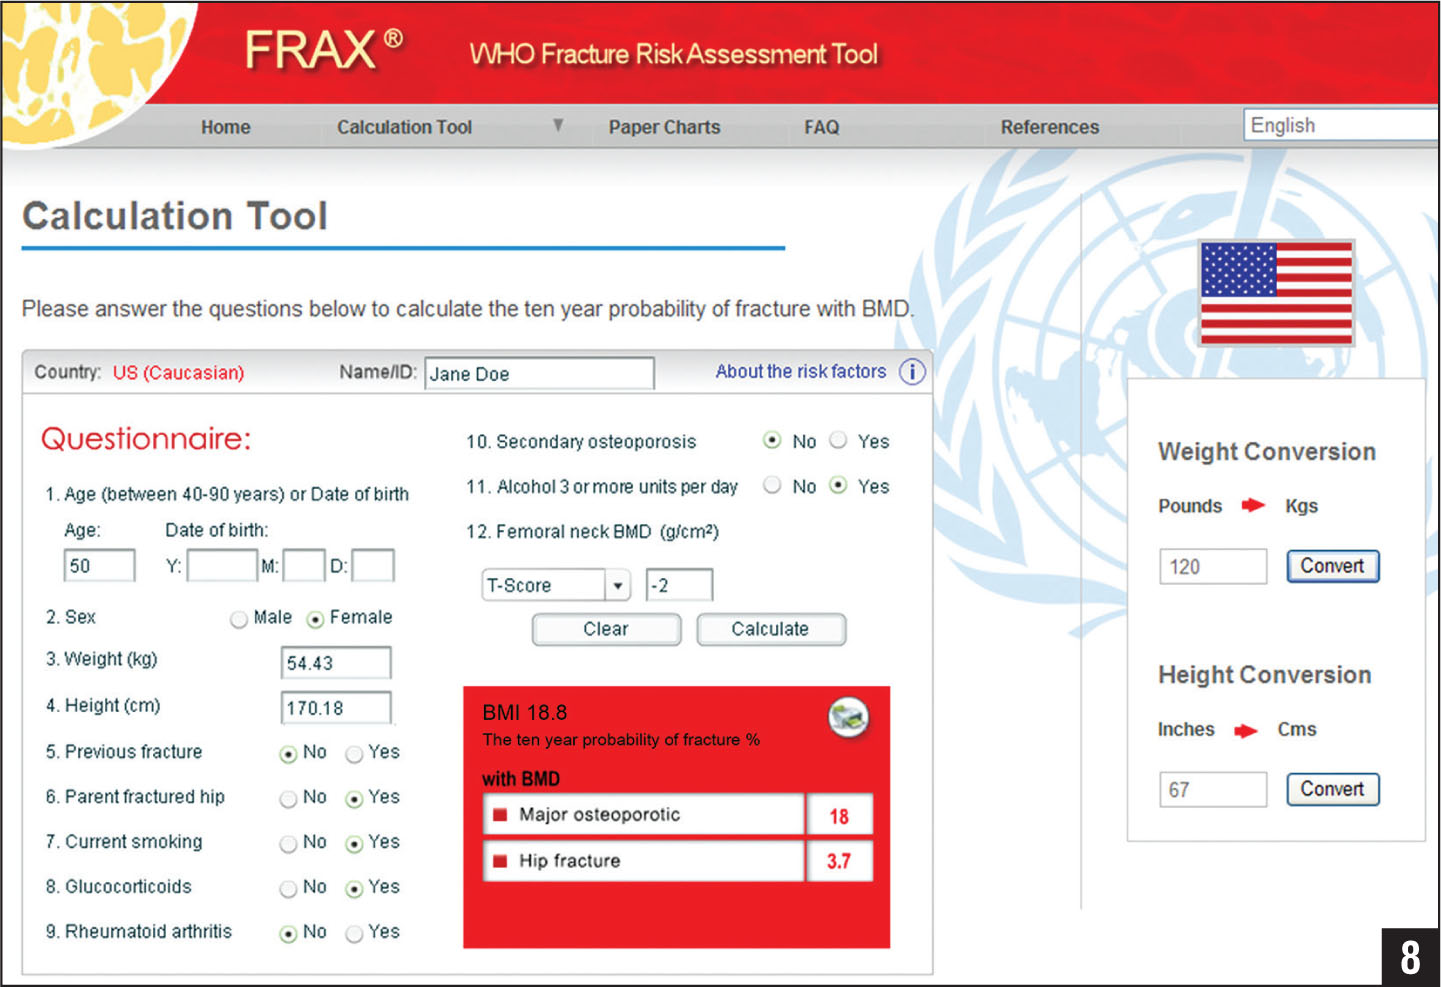 World Health Organization (WHO) Fracture Risk Assessment Tool (FRAX). In this example, a 50-year-old, thin, US Caucasian woman has a parent with a history of a fractured hip as well as current smoking, glucocorticoid, and alcohol use of 3 or more units per day. The T-score from dual-energy x-ray absorptiometry scan was −2.0. This T-score would not generally result in the clinical diagnosis of osteoporosis. The FRAX results (red box) demonstrate an 18% 10-year risk of major osteoporotic fracture of and a 10-year risk of hip fracture as 3.7%. Using the National Osteoporosis Foundation criteria (osteoporotic, or osteopenic with either a 3% or more 10-year hip fracture risk or 20% or more 10-year major osteoporosis-related fracture risk), pharmacological and nonpharmacologic treatment and activity modifications (smoking and alcohol cessation) would be recommended. Adapted with permission from International Osteoporosis Foundation, Fracture Risk Assessment Tool Educational Slide-kit. Available at: http://www.iofbonehealth.org/health-professionals/frax.html.